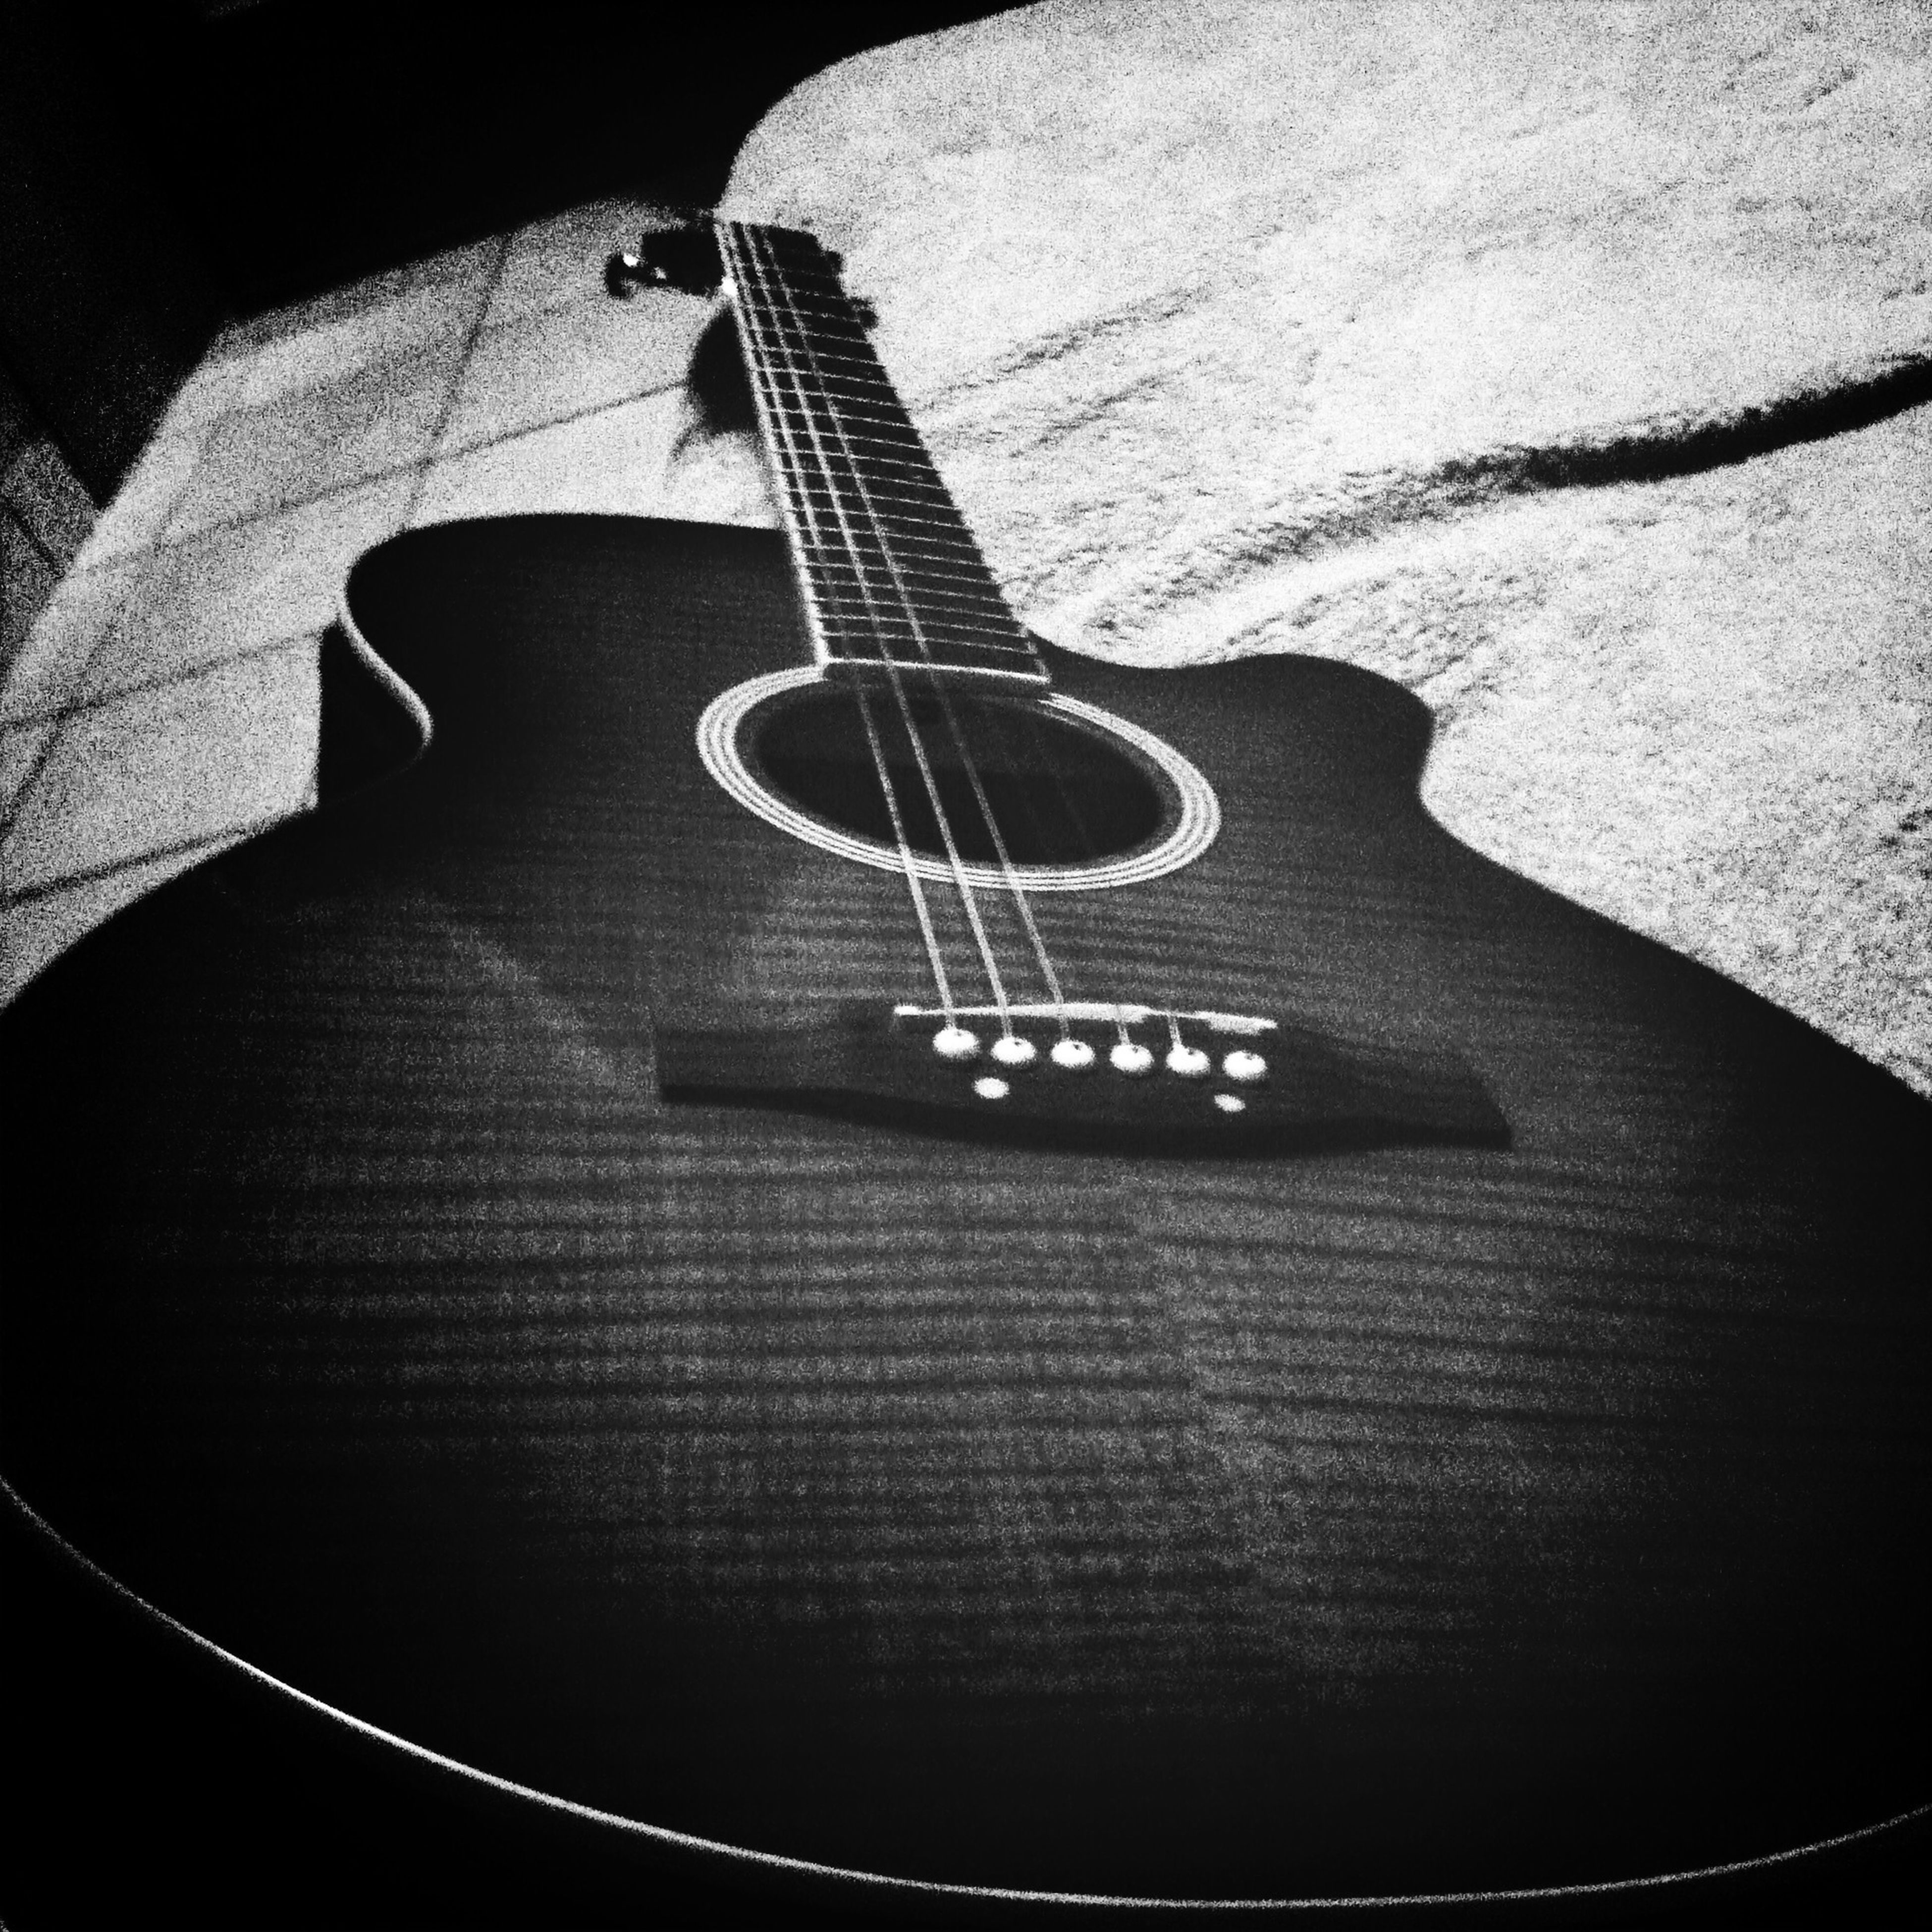 music, musical instrument, indoors, guitar, musical instrument string, musical equipment, arts culture and entertainment, high angle view, close-up, still life, string instrument, acoustic guitar, technology, single object, selective focus, metal, table, no people, part of, hobbies